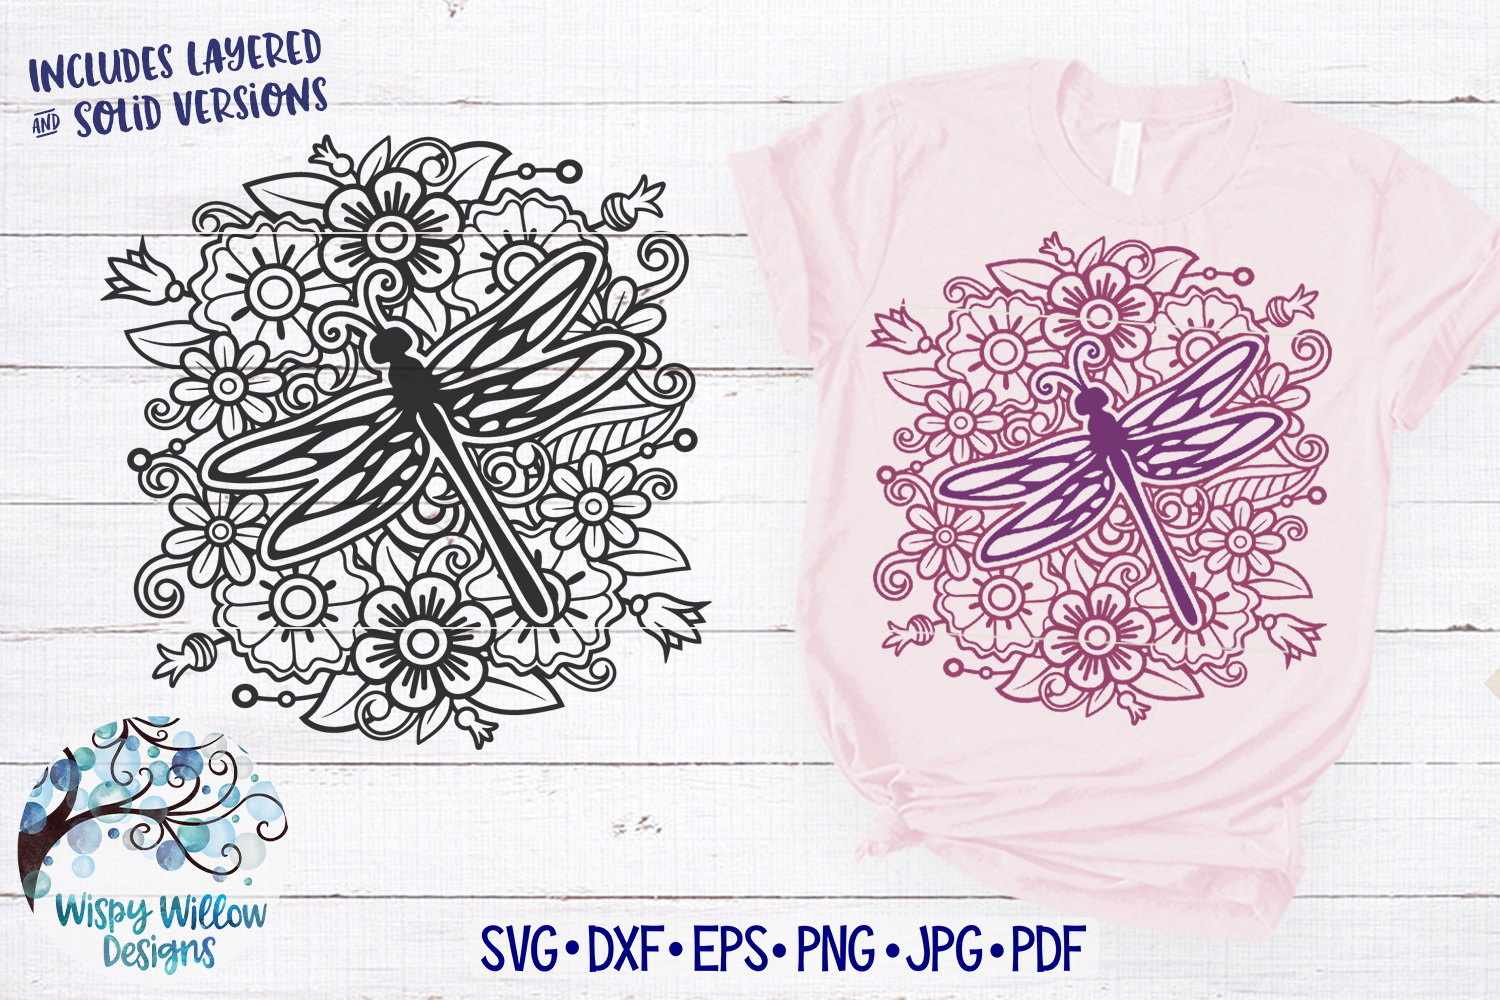 Dragonfly Mandala SVG | Dragonfly with Flowers SVG Cut File example image 1